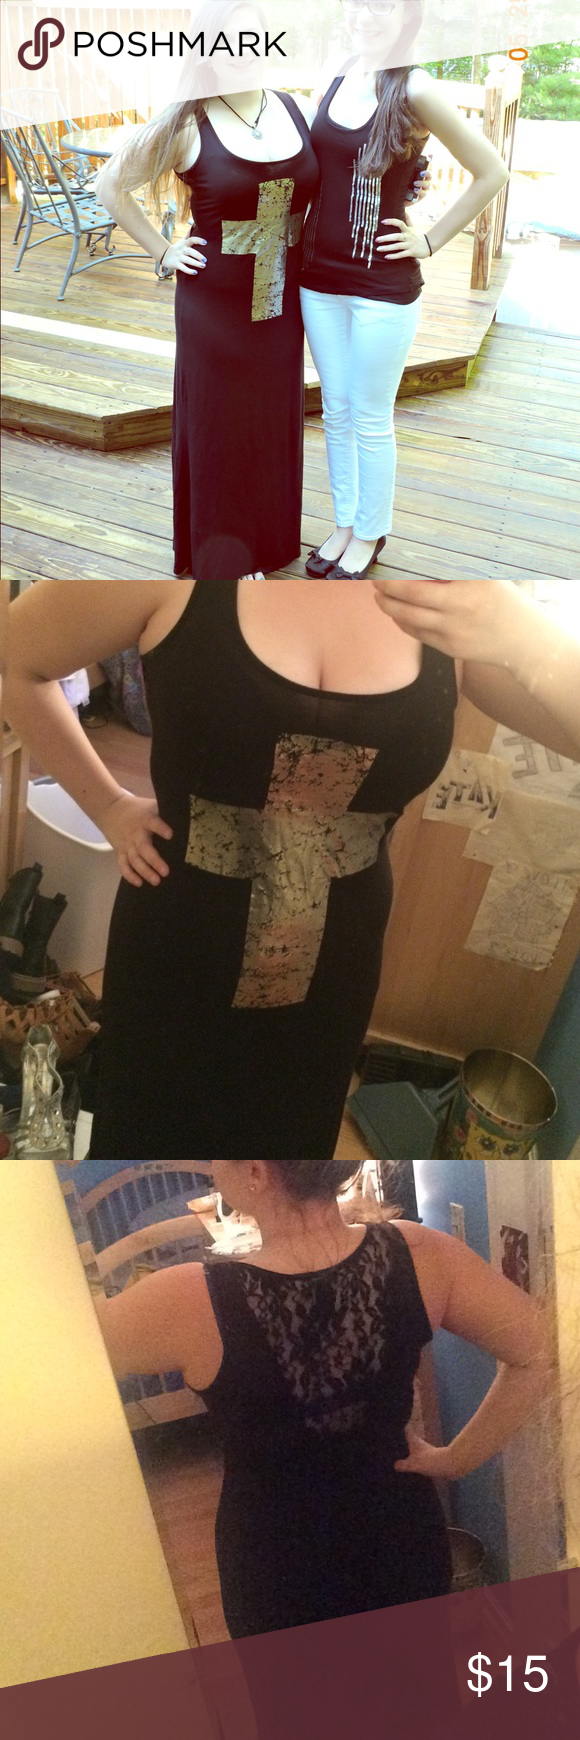 Black maxi dress with lace back and metallic cross Black maxi dress with a sexy lace back and a metallic gold cross on the front. Worn twice. Soft material, hugs your body in all the right places Dresses Maxi